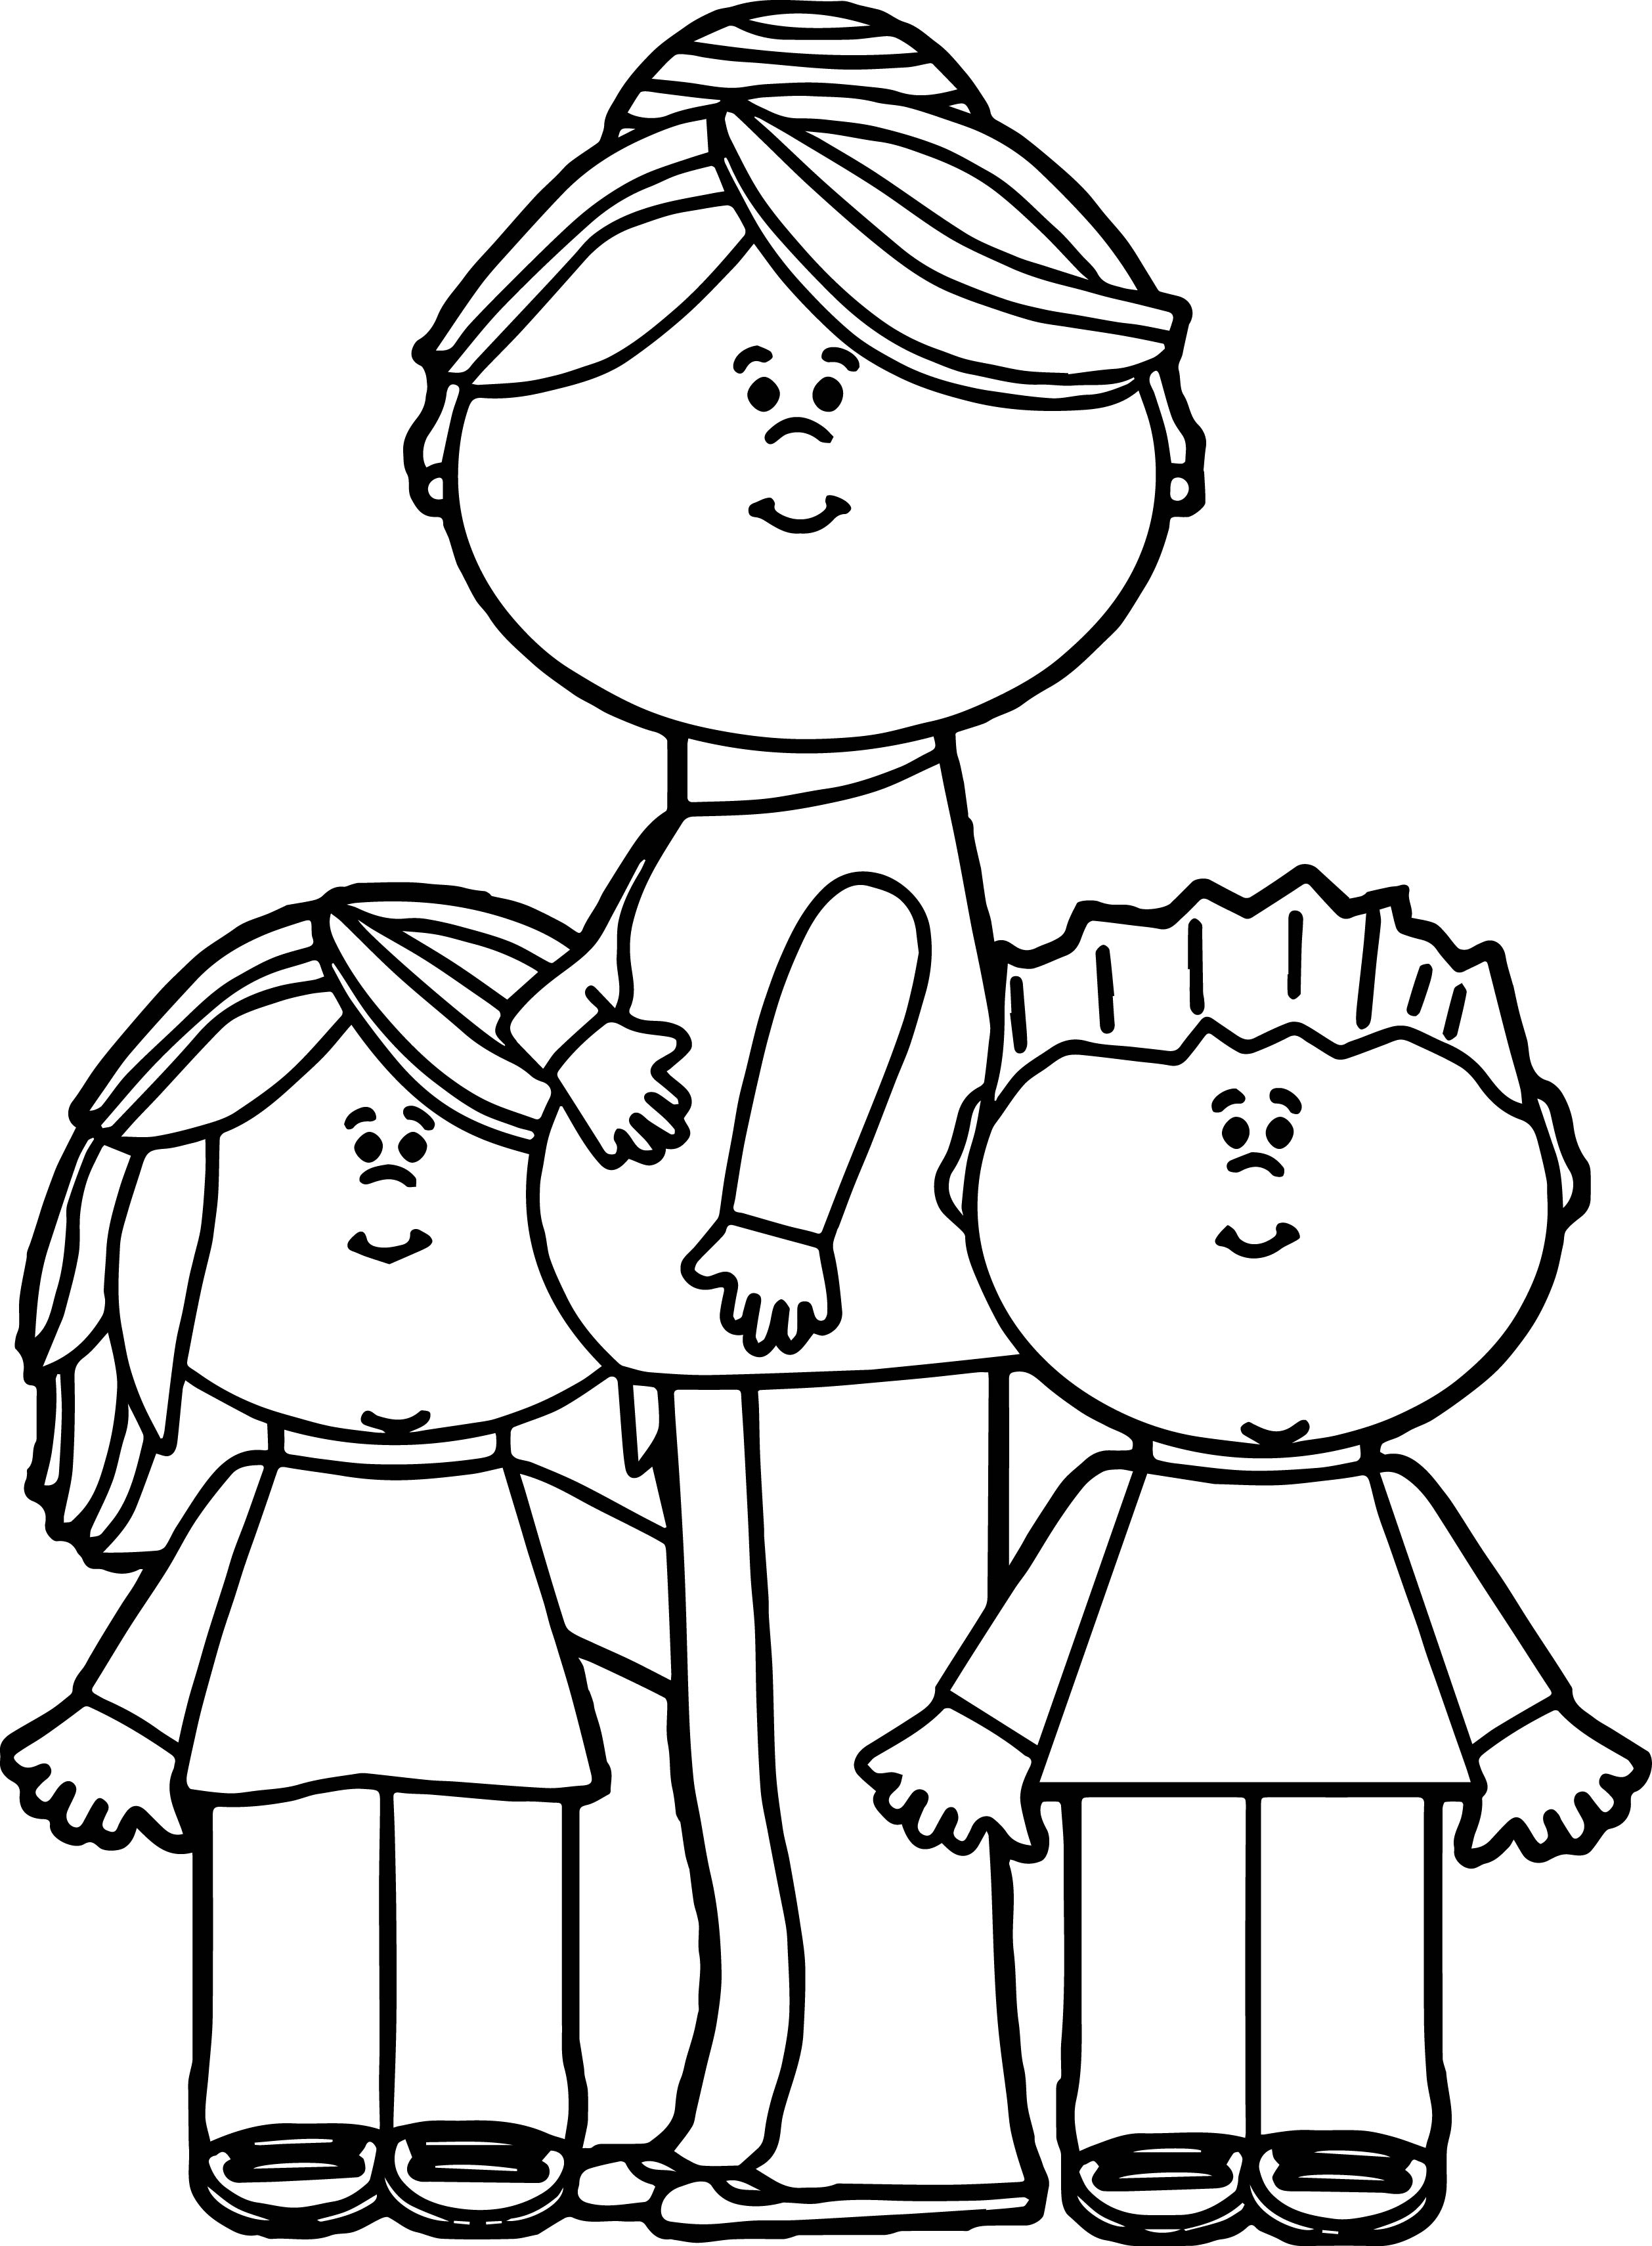 2516x3421 Best Of Storks Movie Coloring Page Family Fun Free